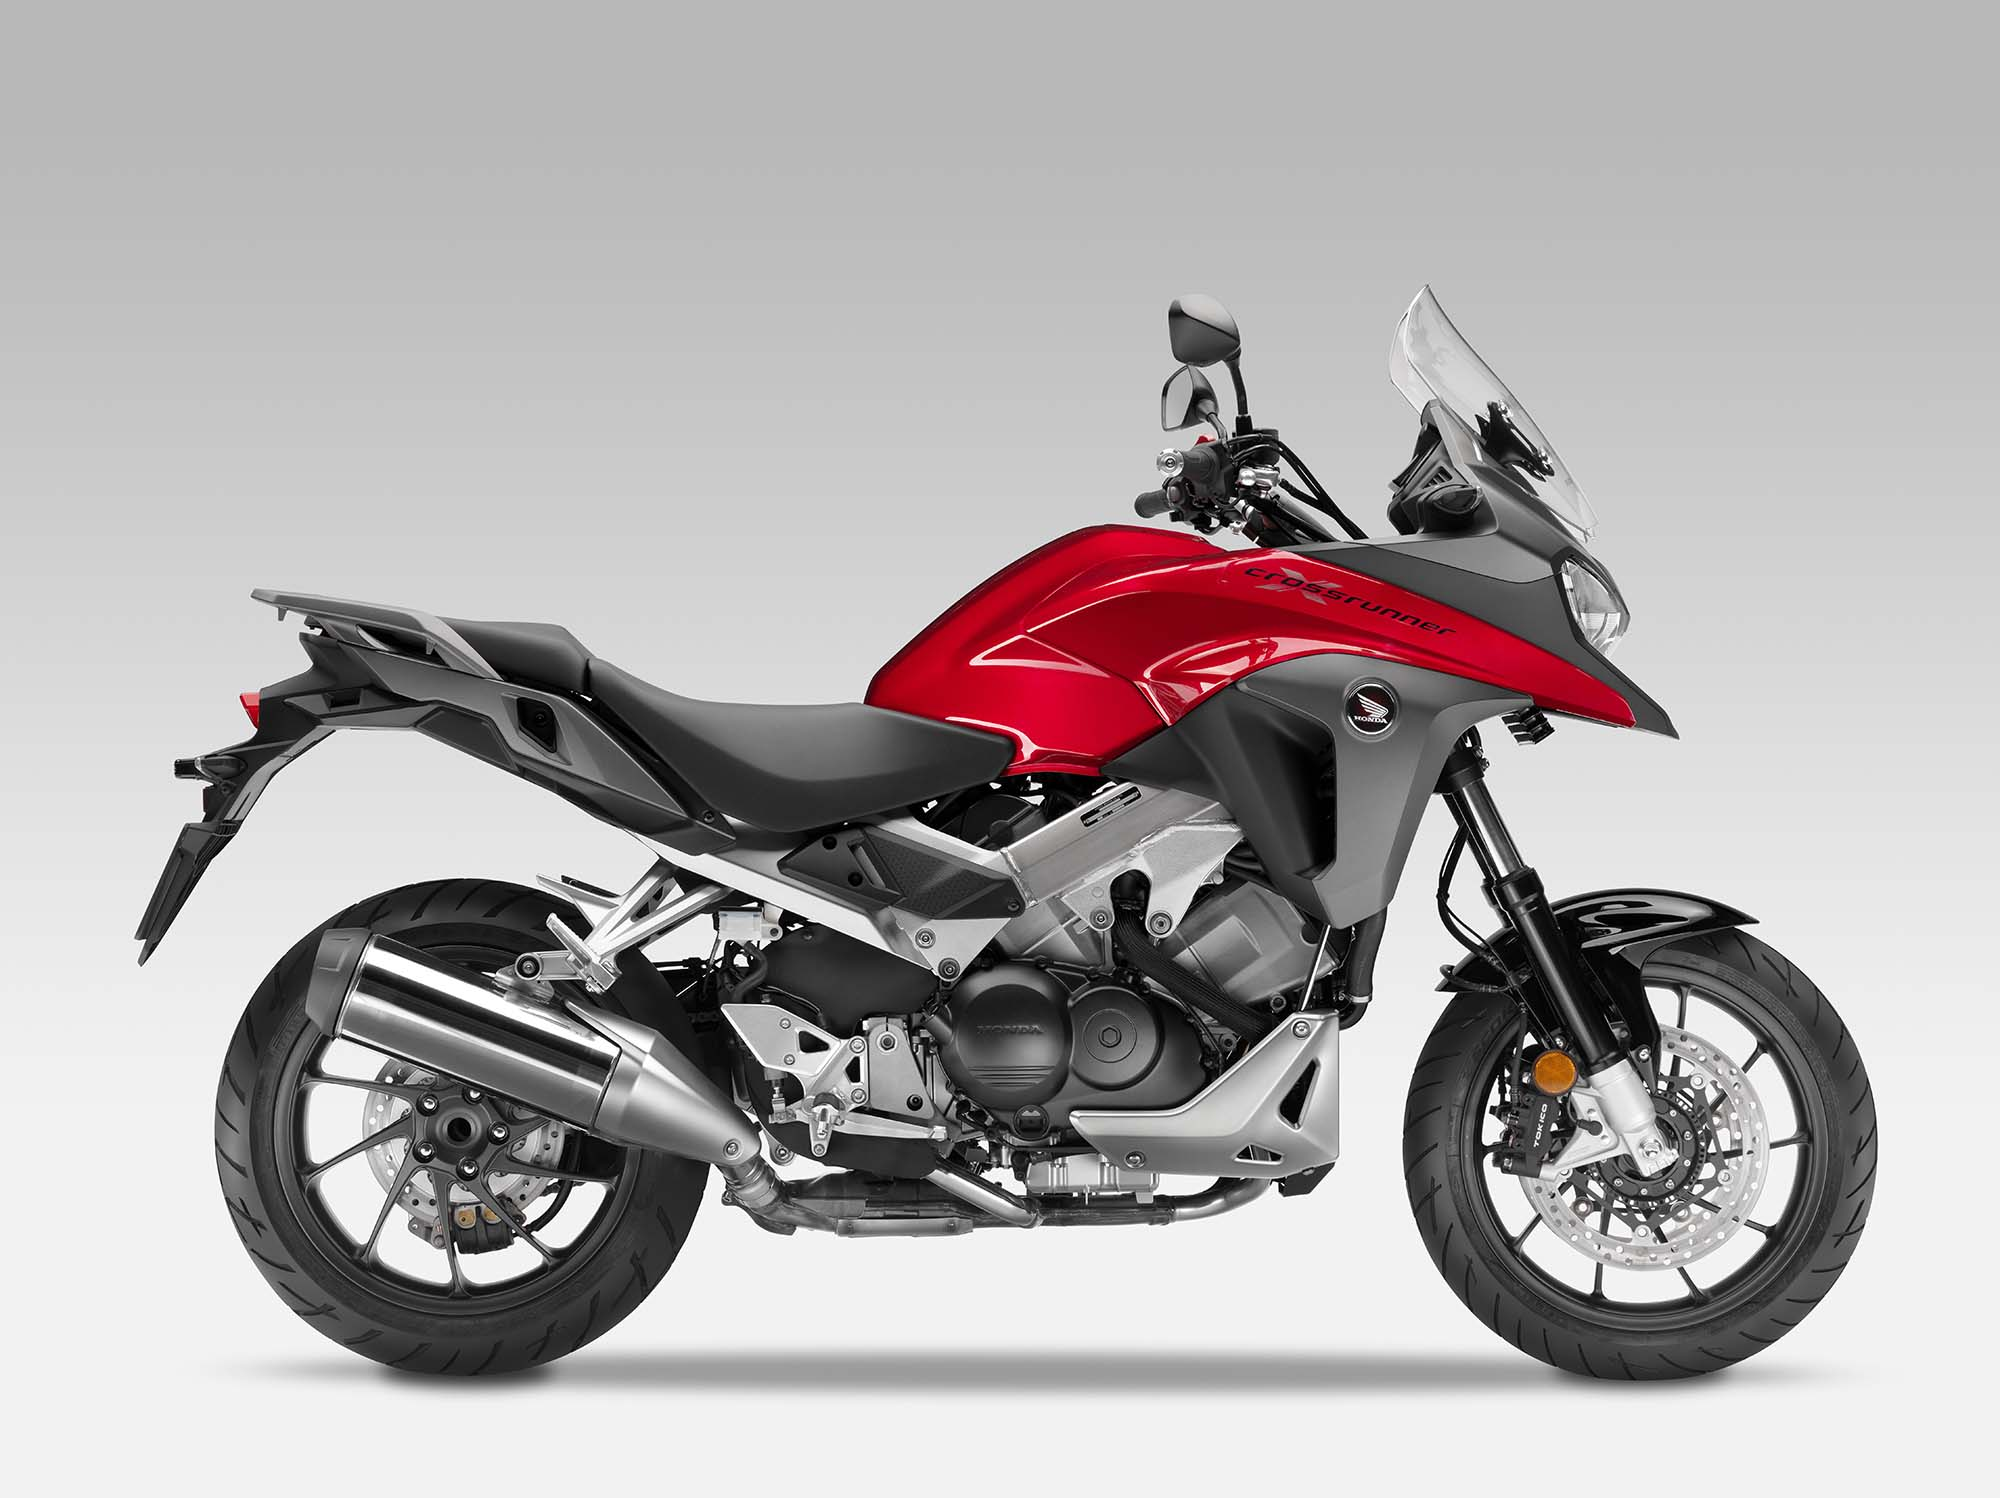 2015 Honda VFR800X Crossrunner - More Than an Update